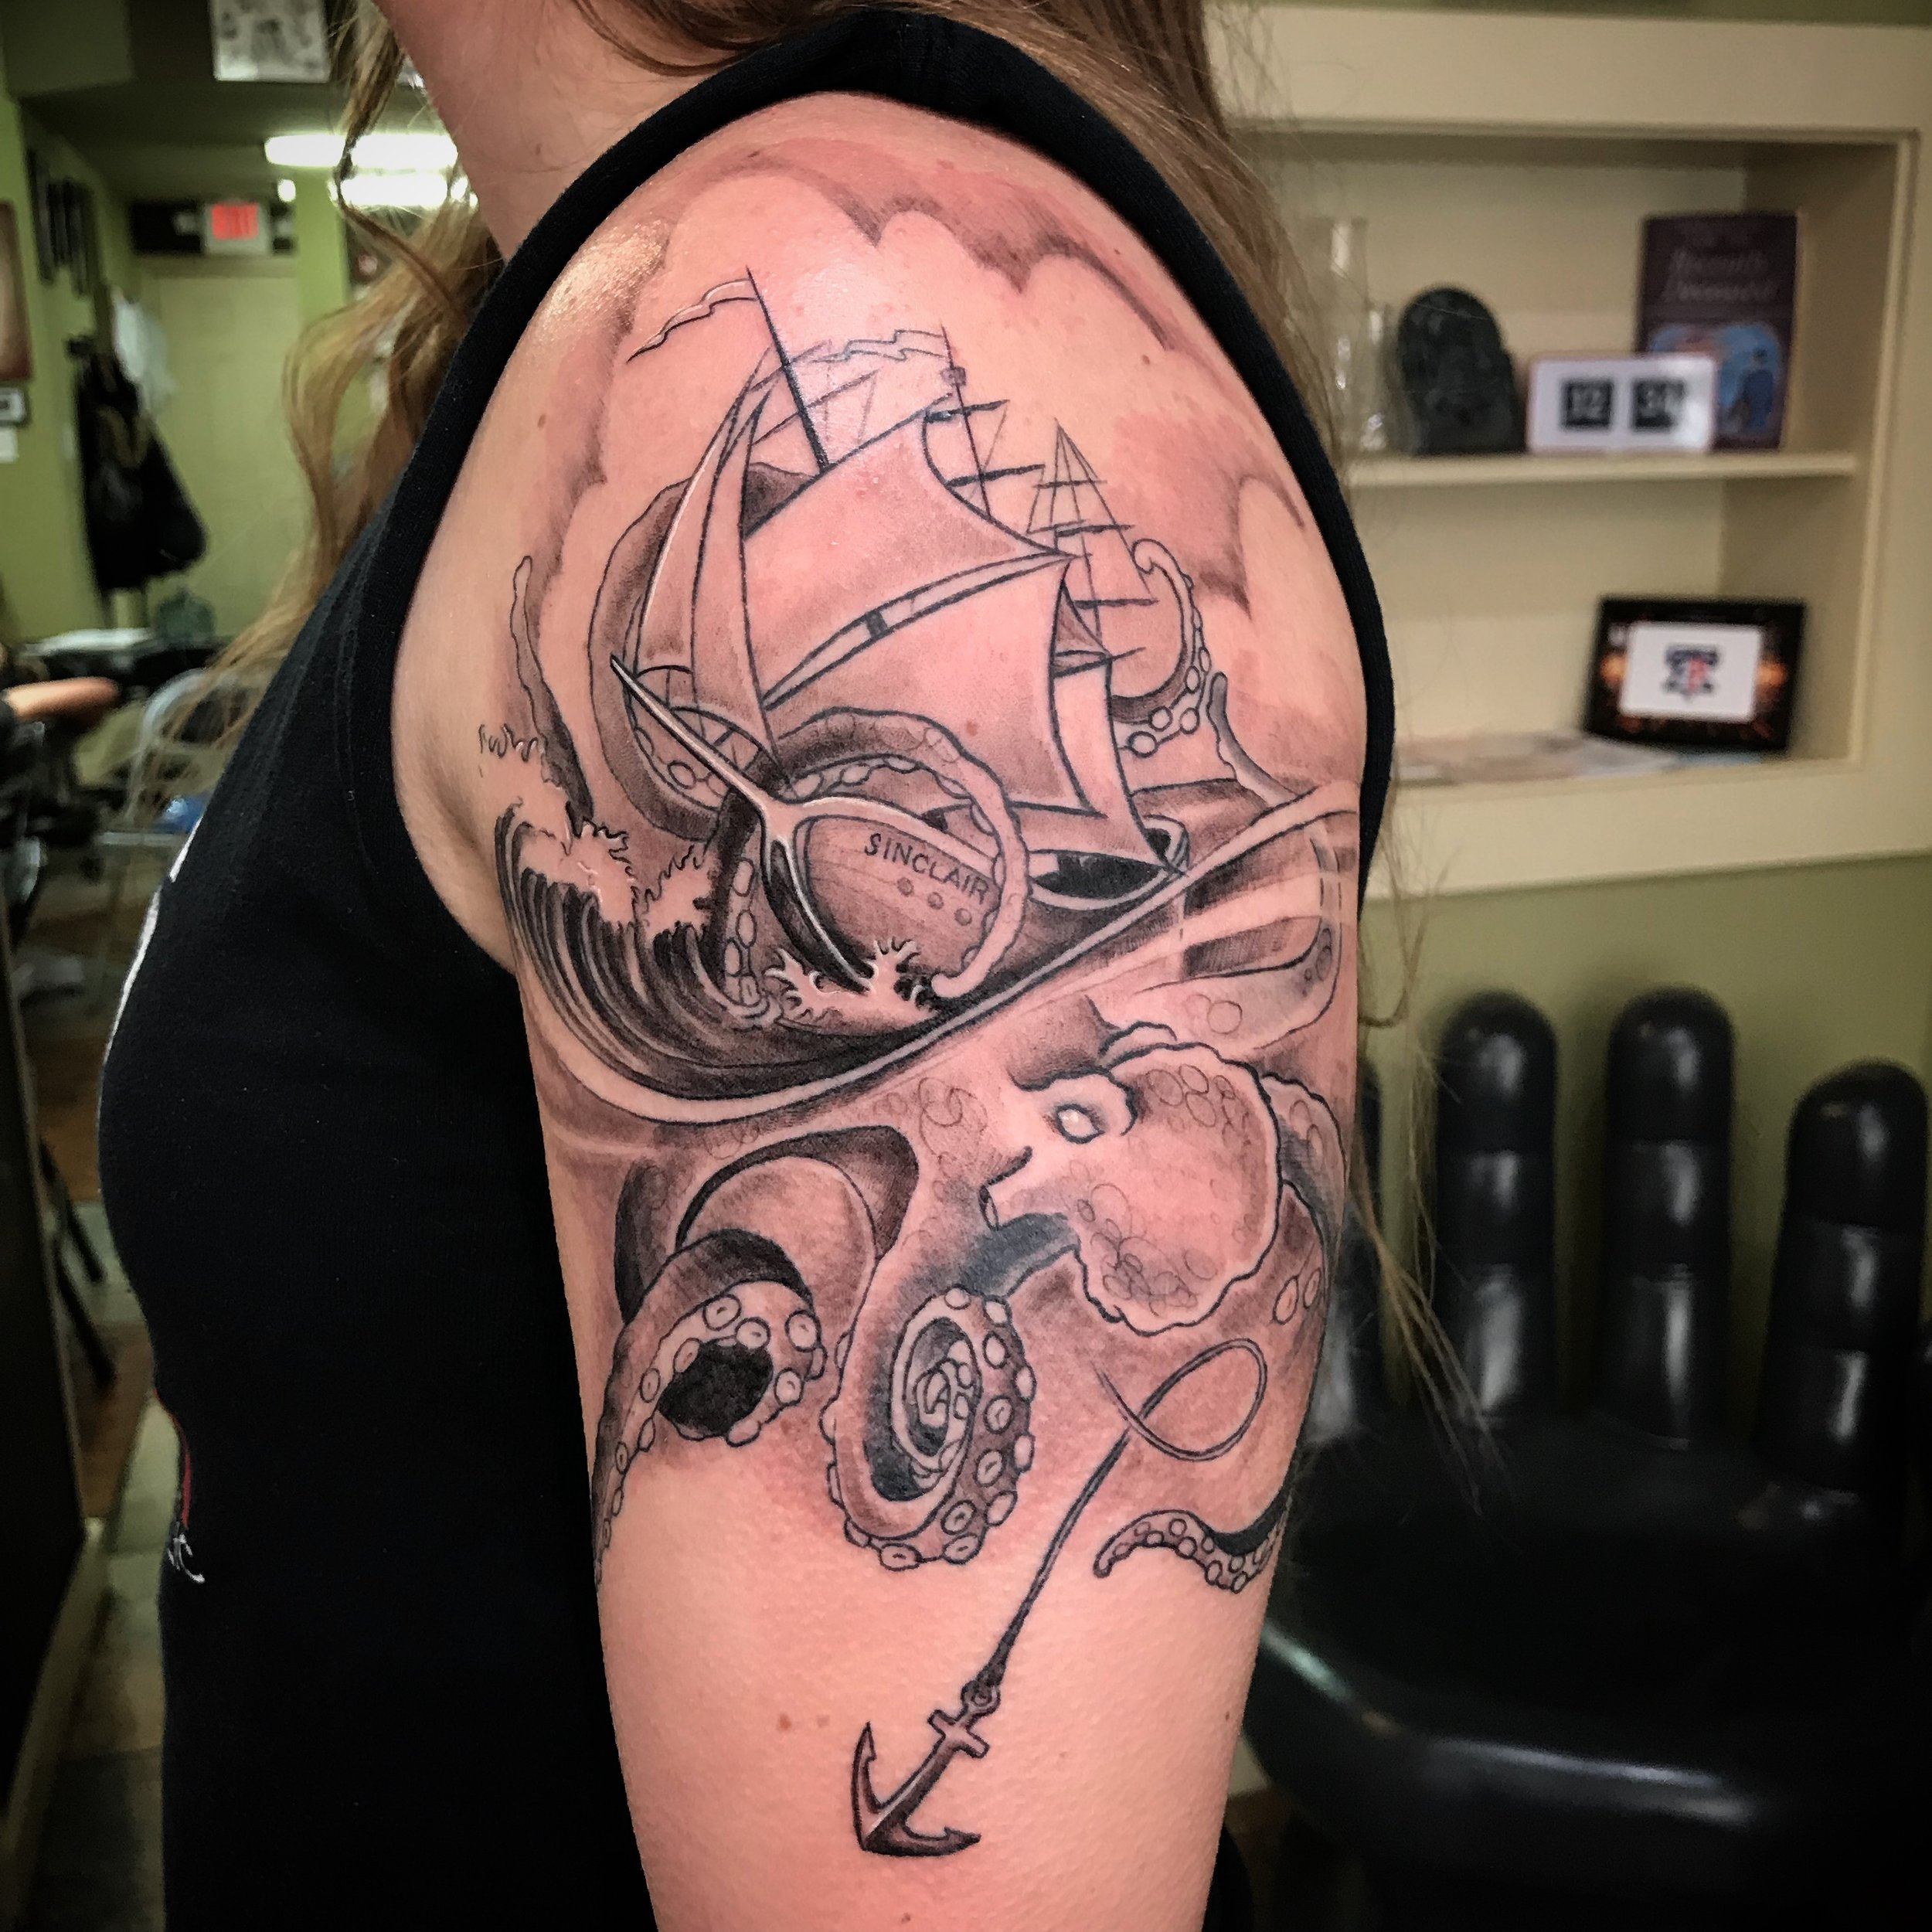 bg Justin Turkus Philadelphia fine line lettering best tattoo Artist heidi sleeve ship cracken octopus anchor sinclair fullsize.jpg